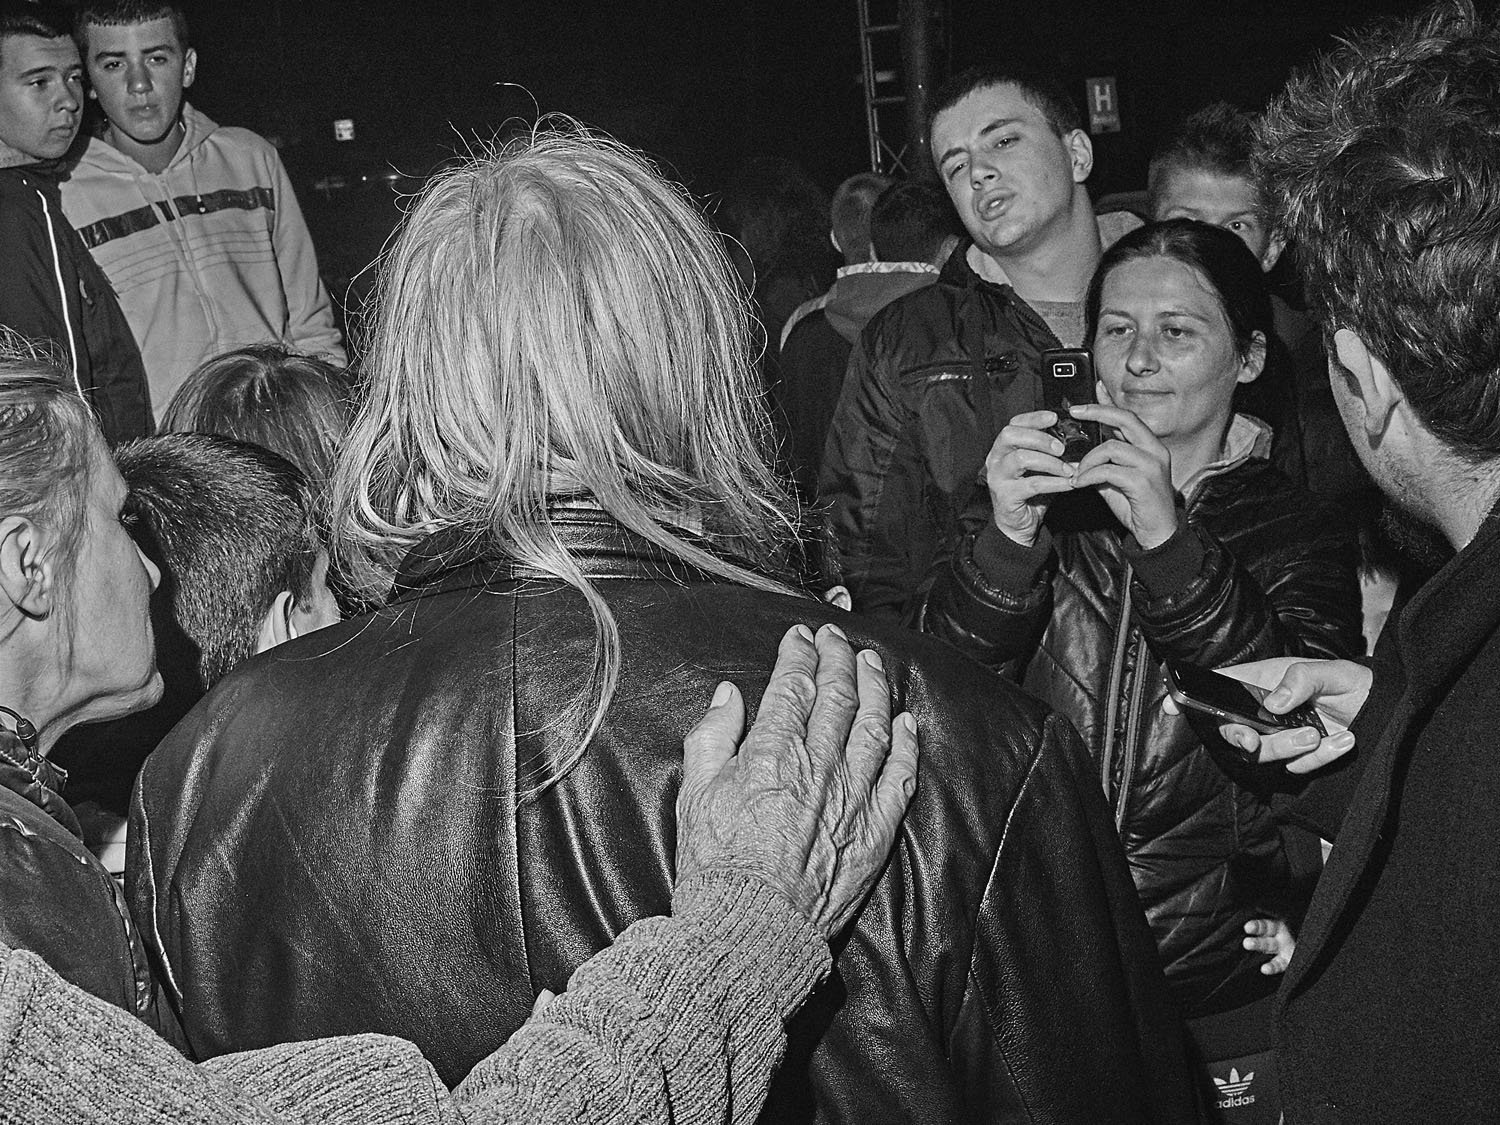 People welcome Bora Djordjevic, the frontman of nationalist band Riblja Cobra, in Mitrovica the night before elections in Kosovo